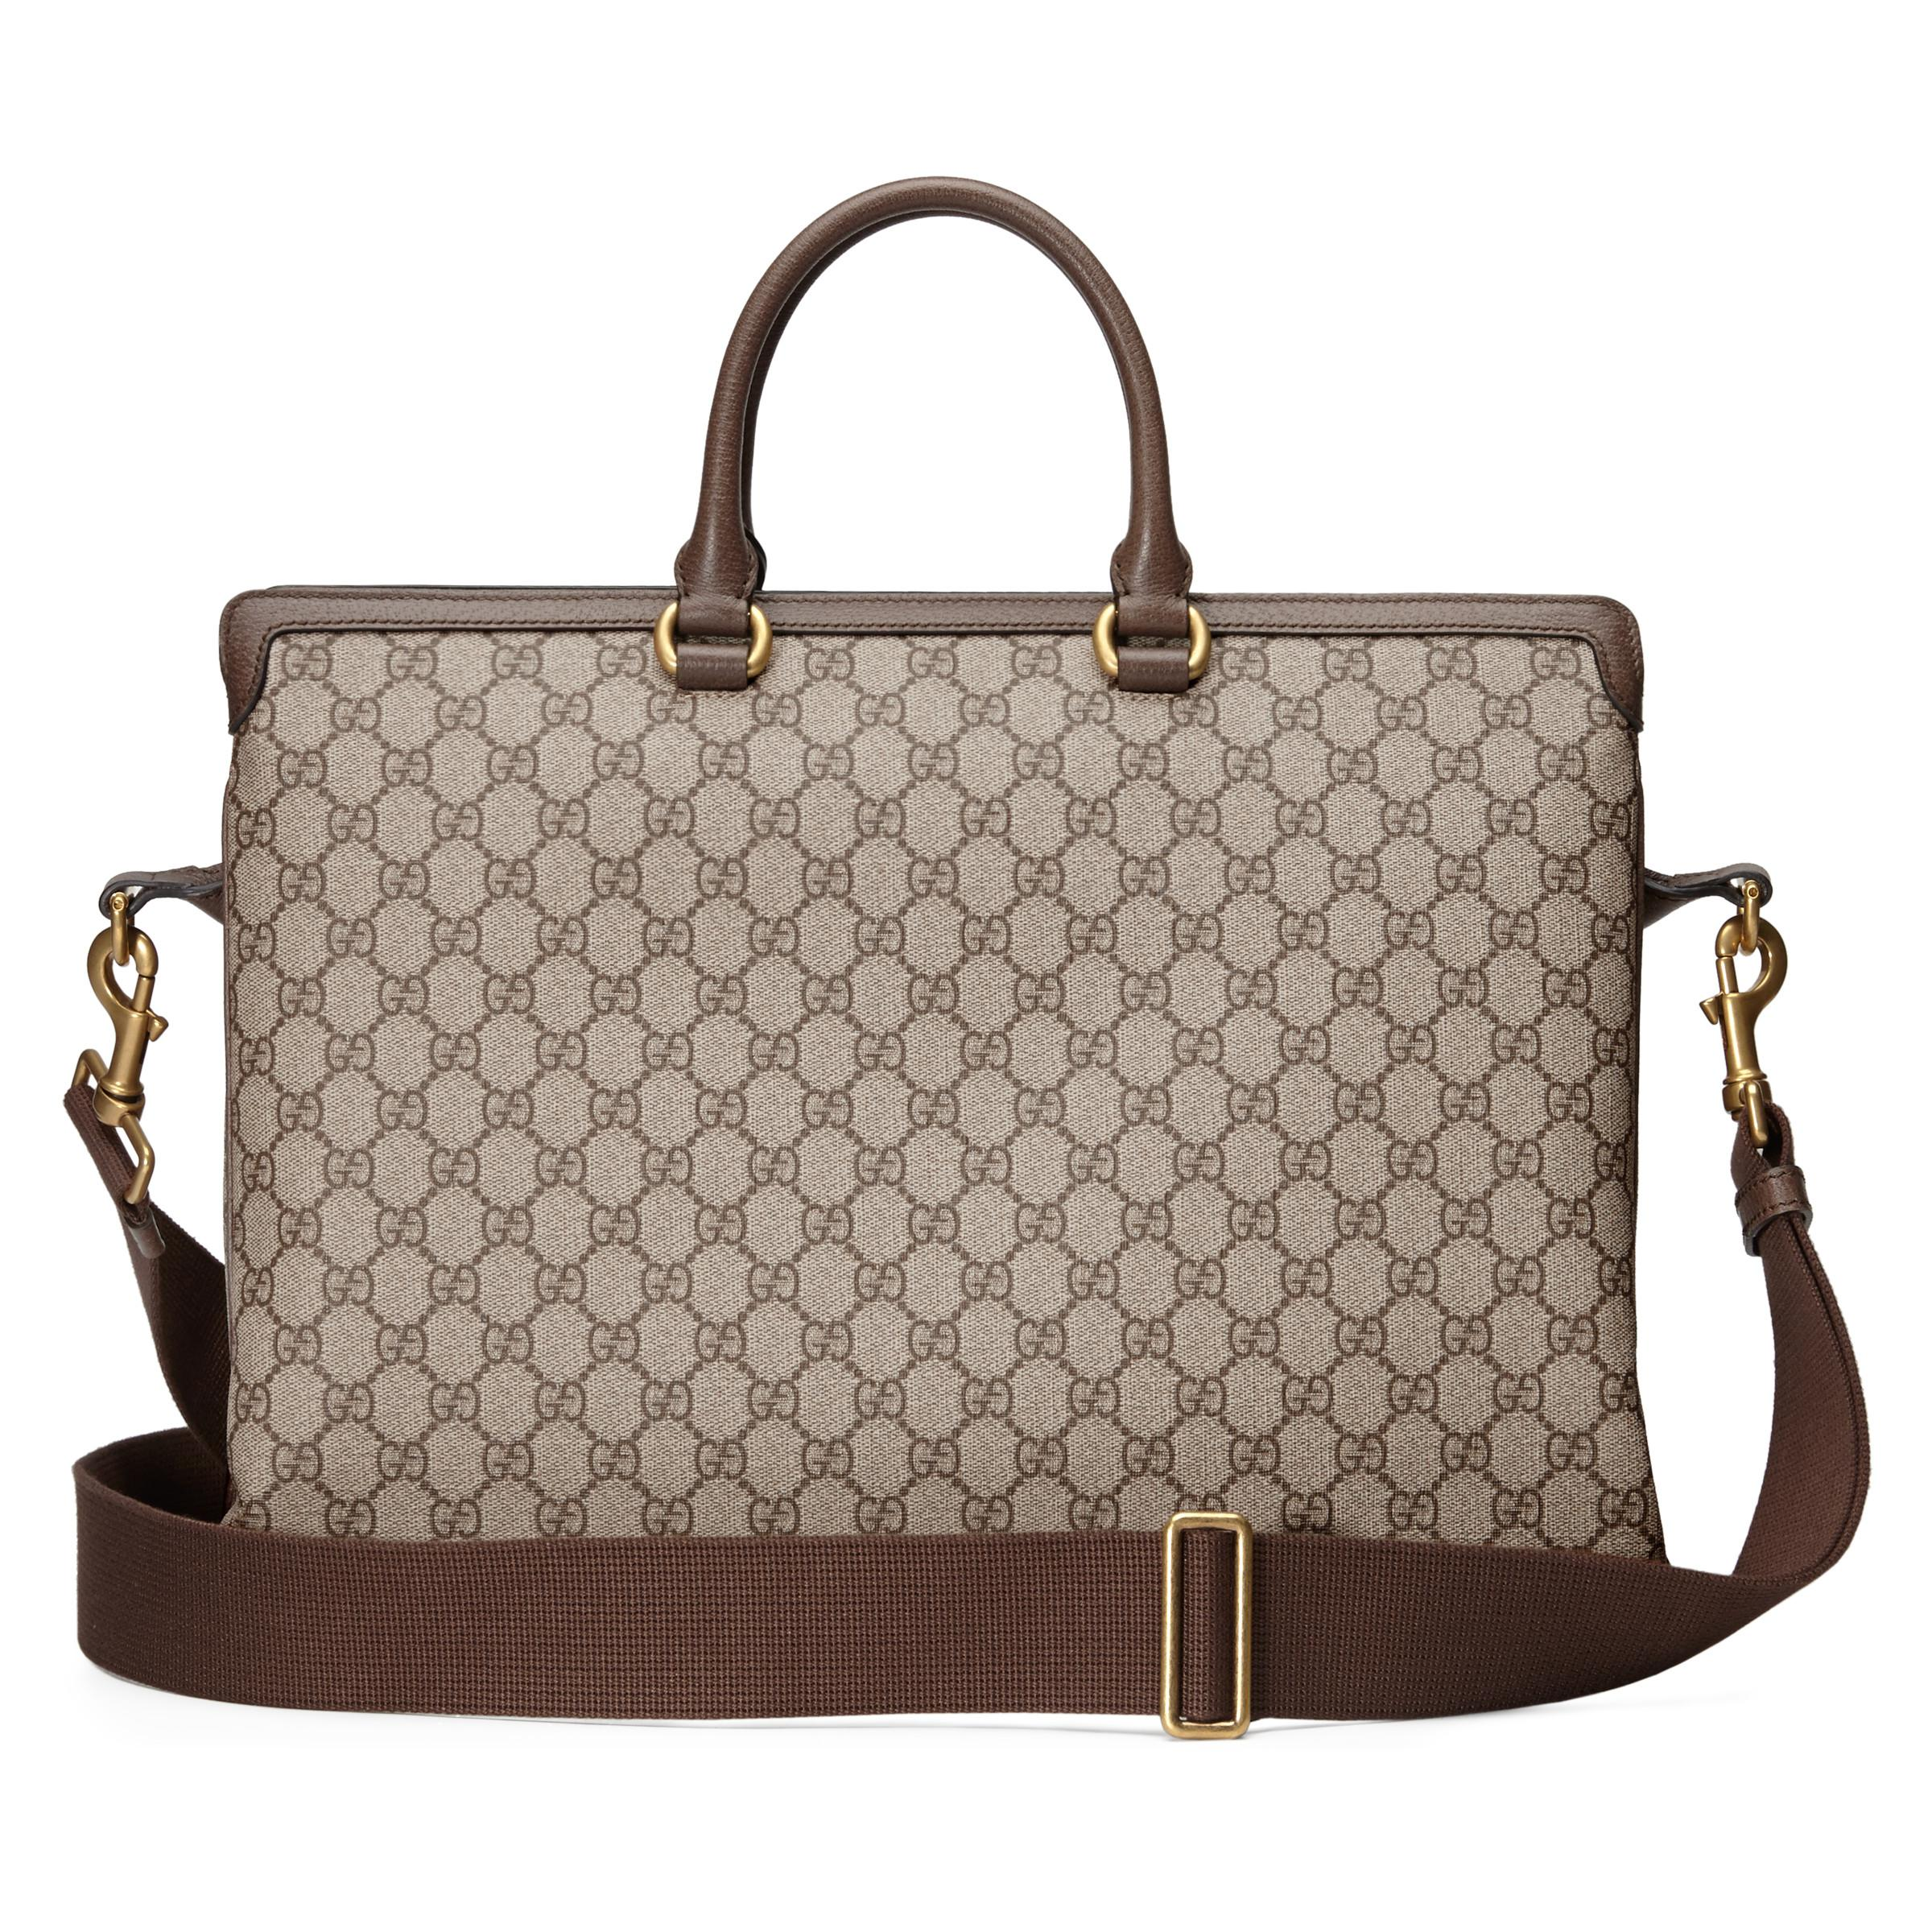 184b7fb2a14 Gucci - Natural Ophidia GG Briefcase for Men - Lyst. View fullscreen